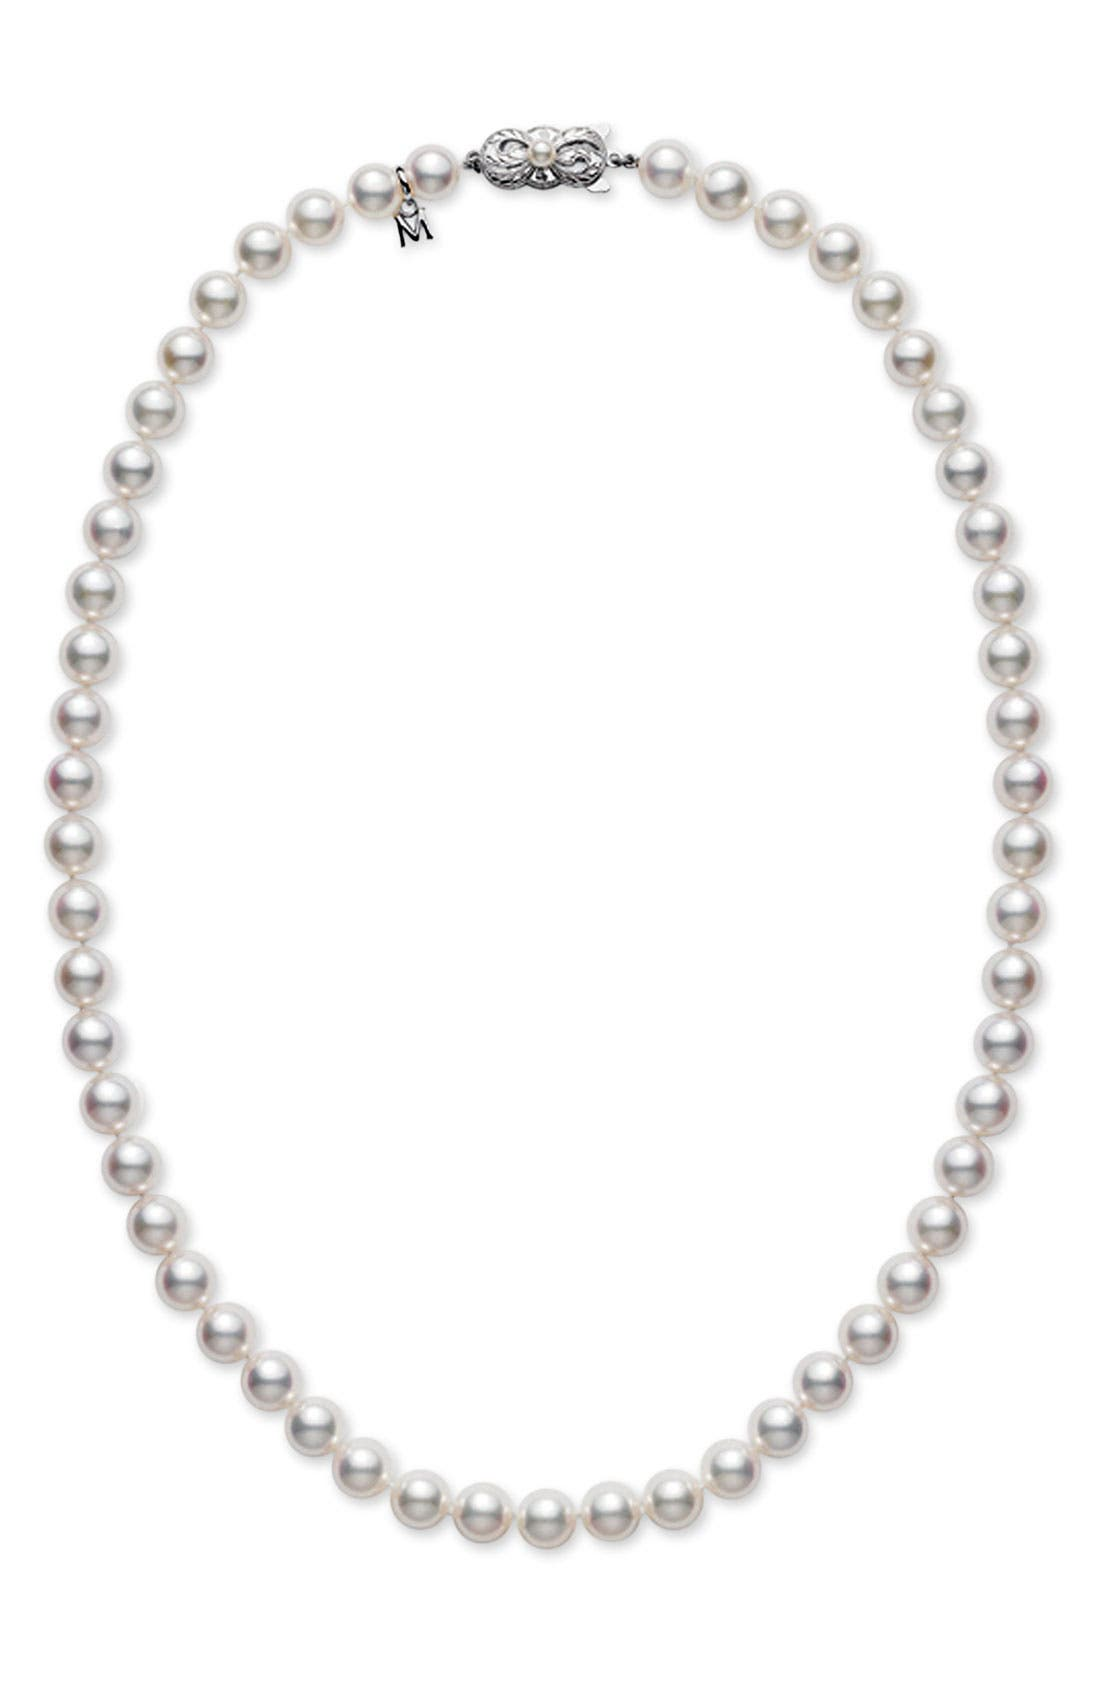 Main Image - Mikimoto Pearl Necklace